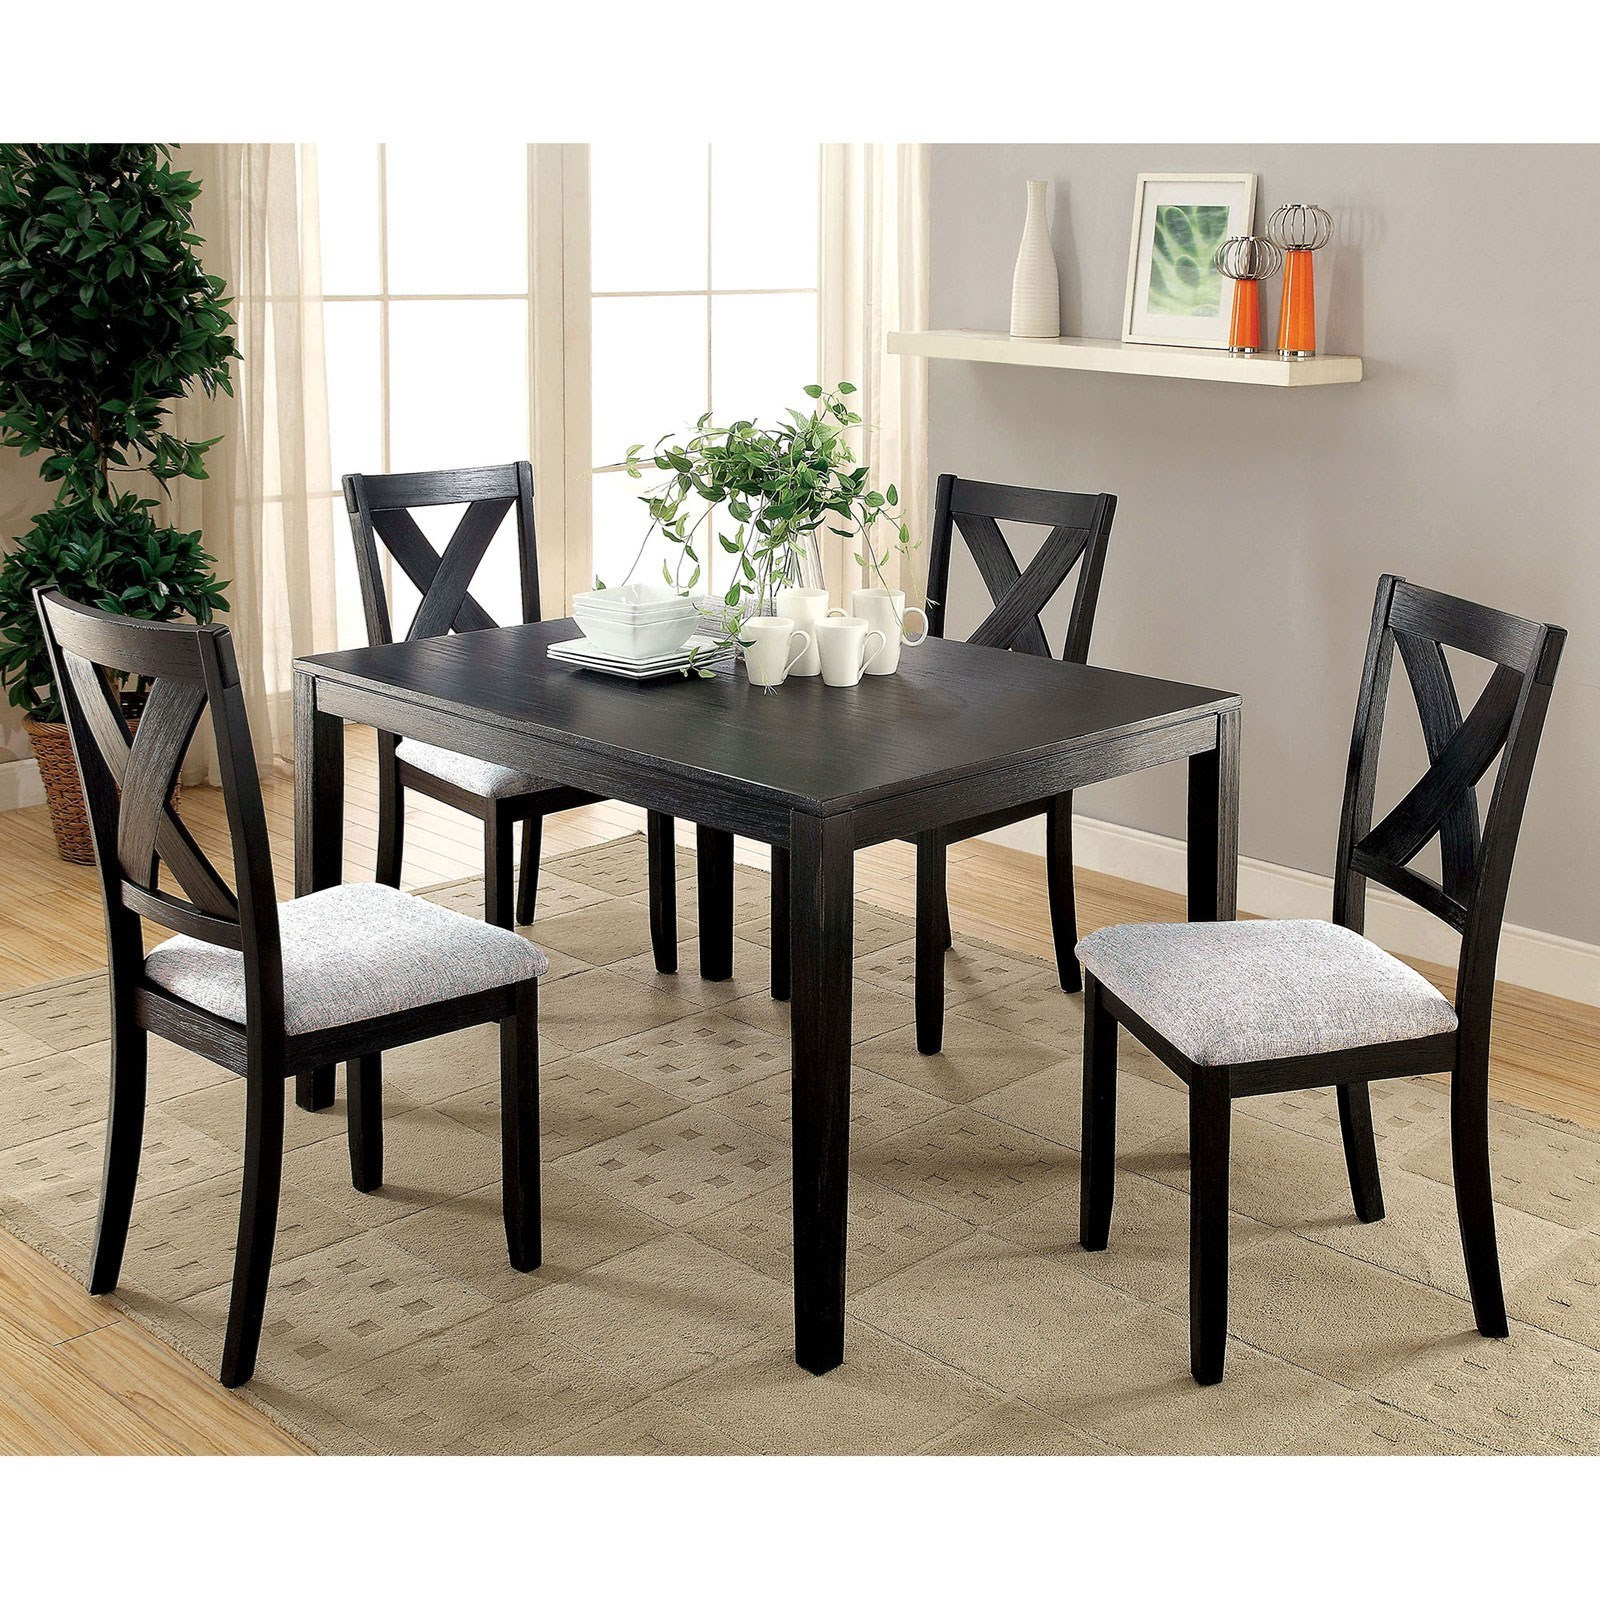 5 Piece Dining Sets Pertaining To Fashionable Furniture Of America Glenham 5 Piece Dining Table Set (View 17 of 25)